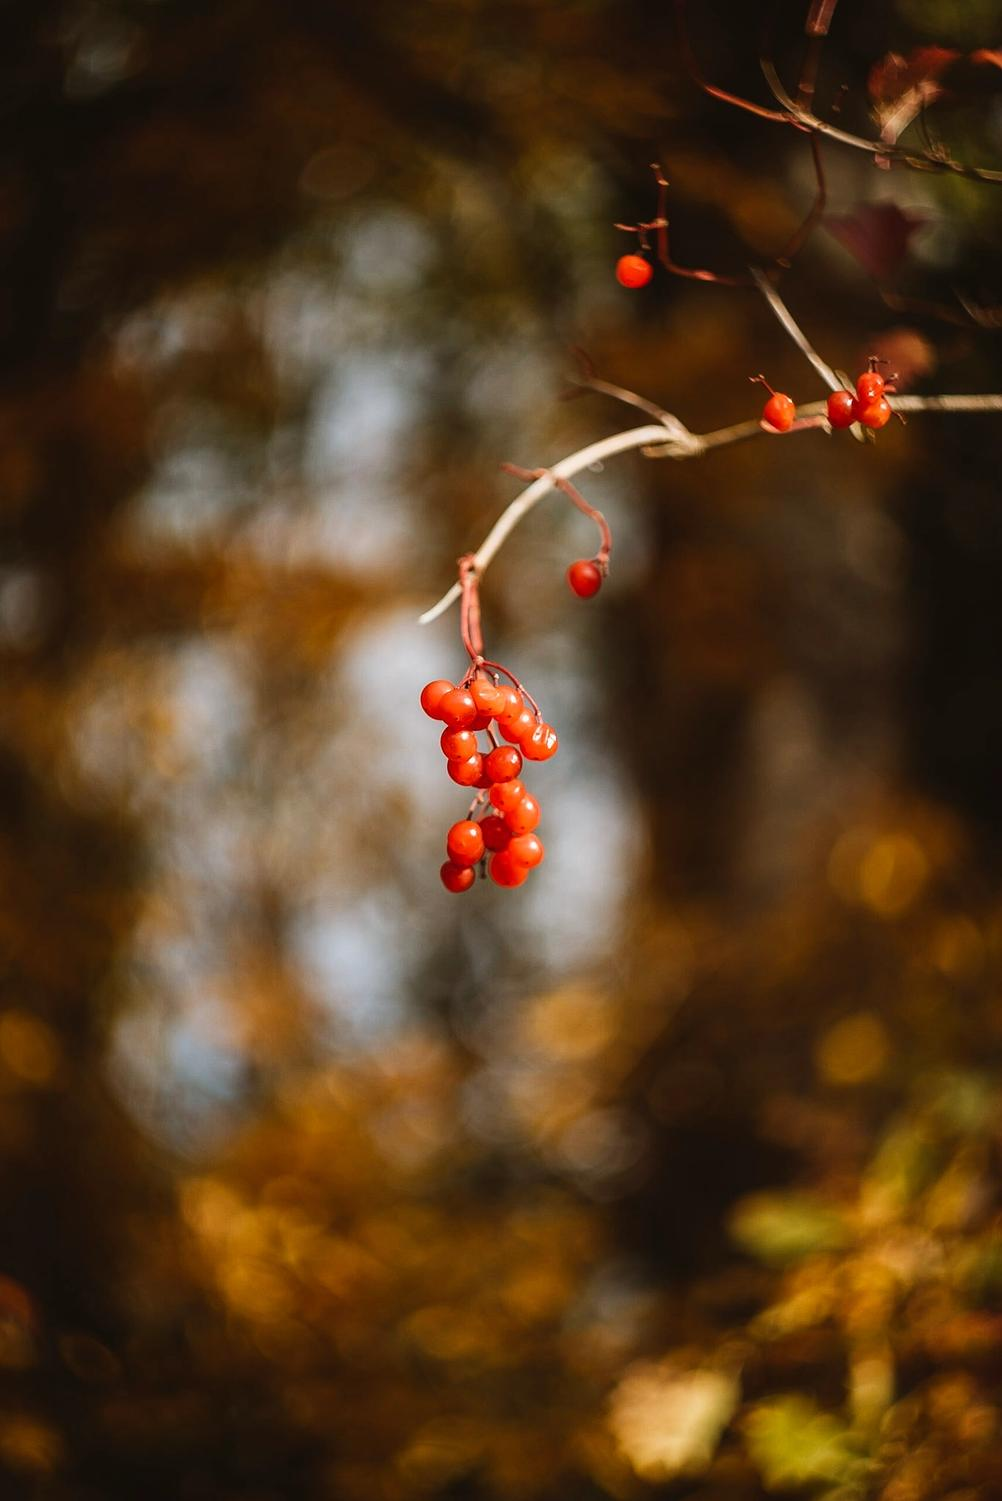 Photo of some berries on a branch.